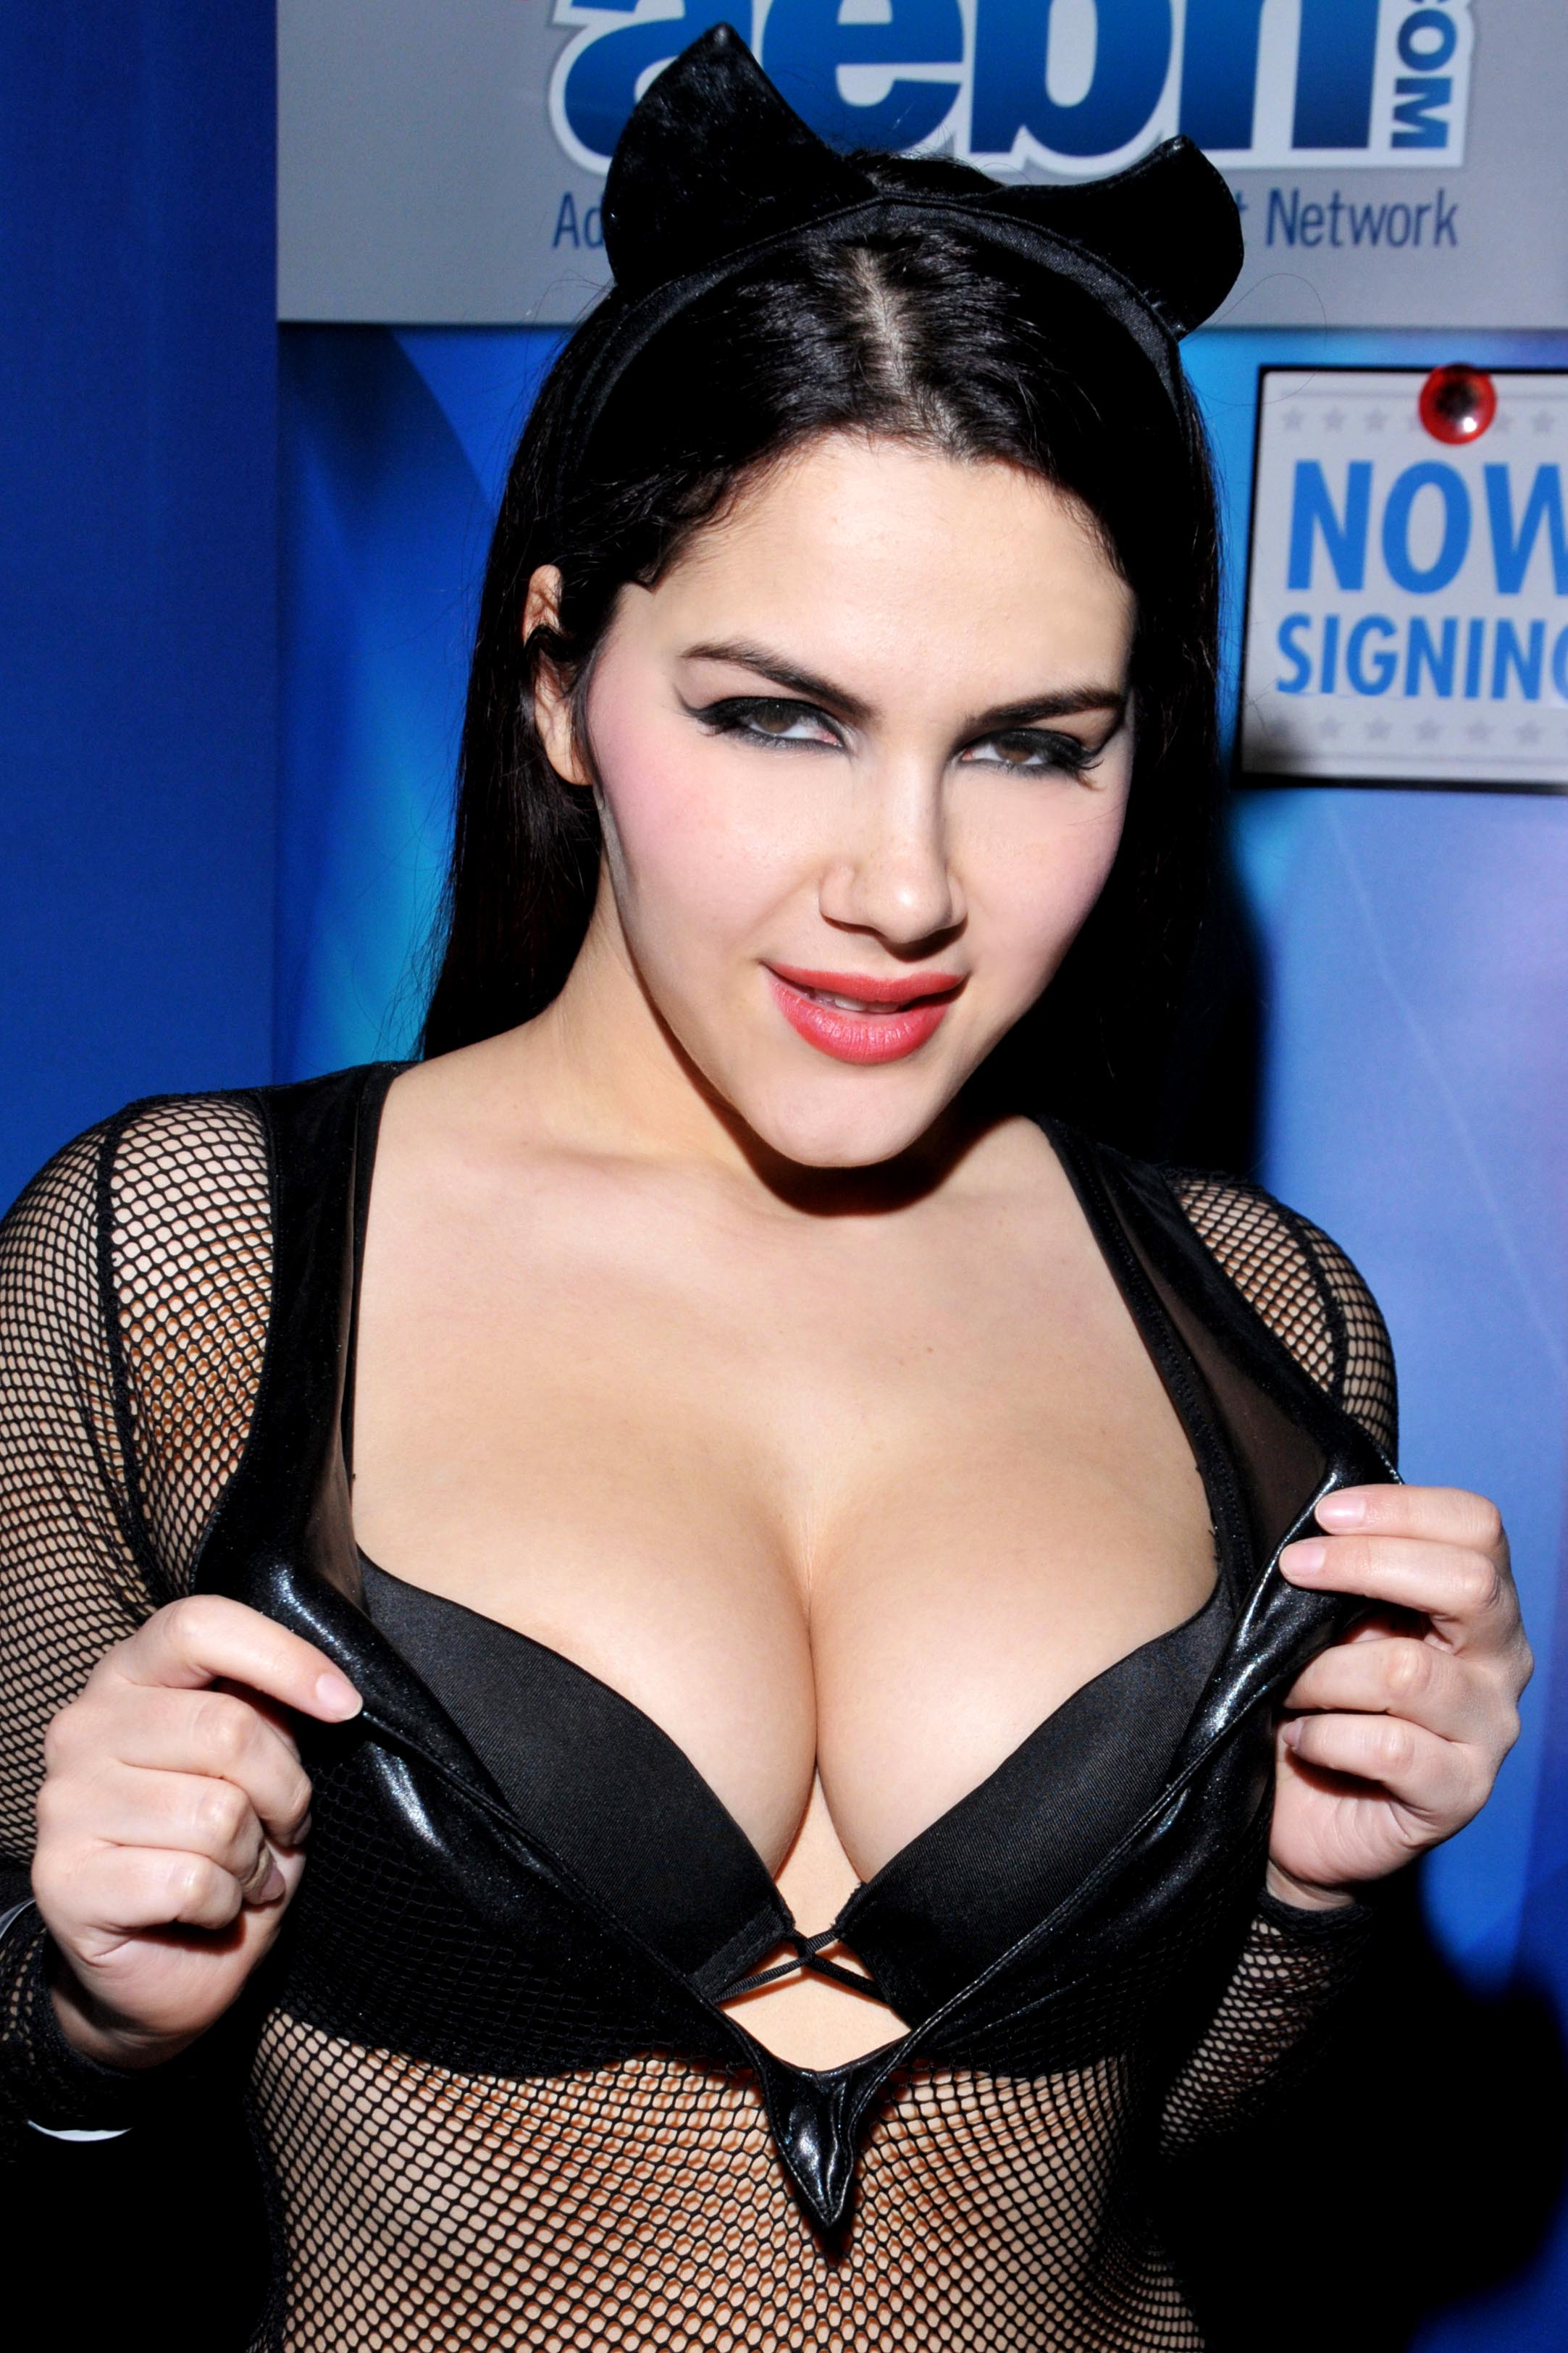 33rd Annual AVN Adult Entertainment Expo Day 3 at the Hard Rock Hotel in Las Vegas Nevada on January 22, 2016